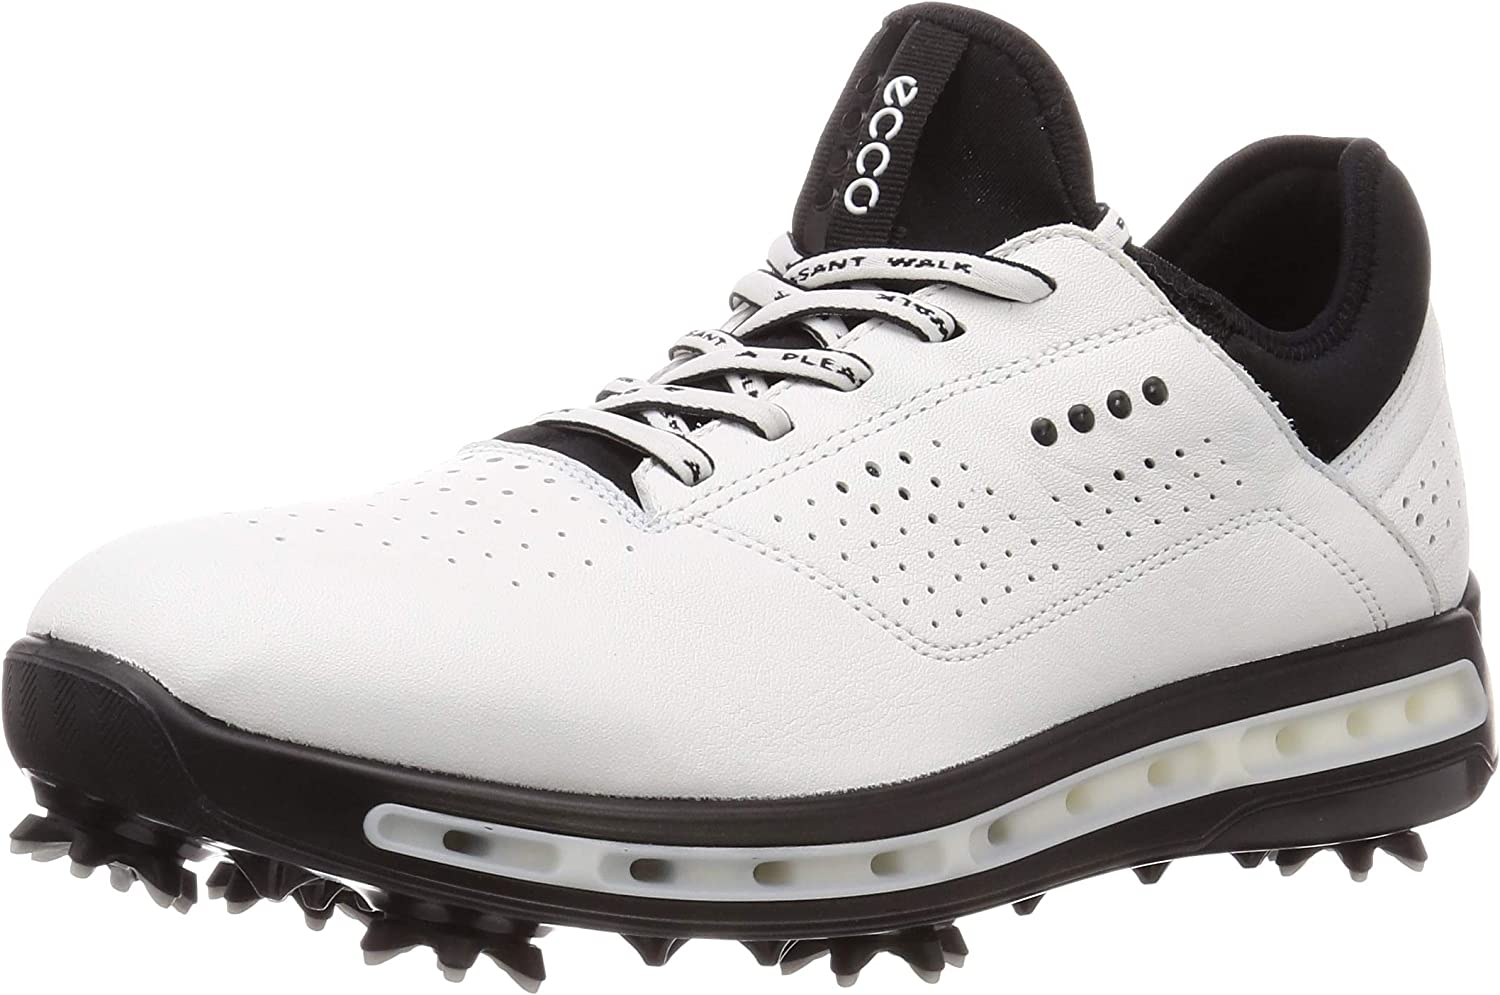 ECCO Golf Cool G8 - Botas de golf para hombre, color blanco, 130114, 43 EU: Amazon.es: Zapatos y complementos